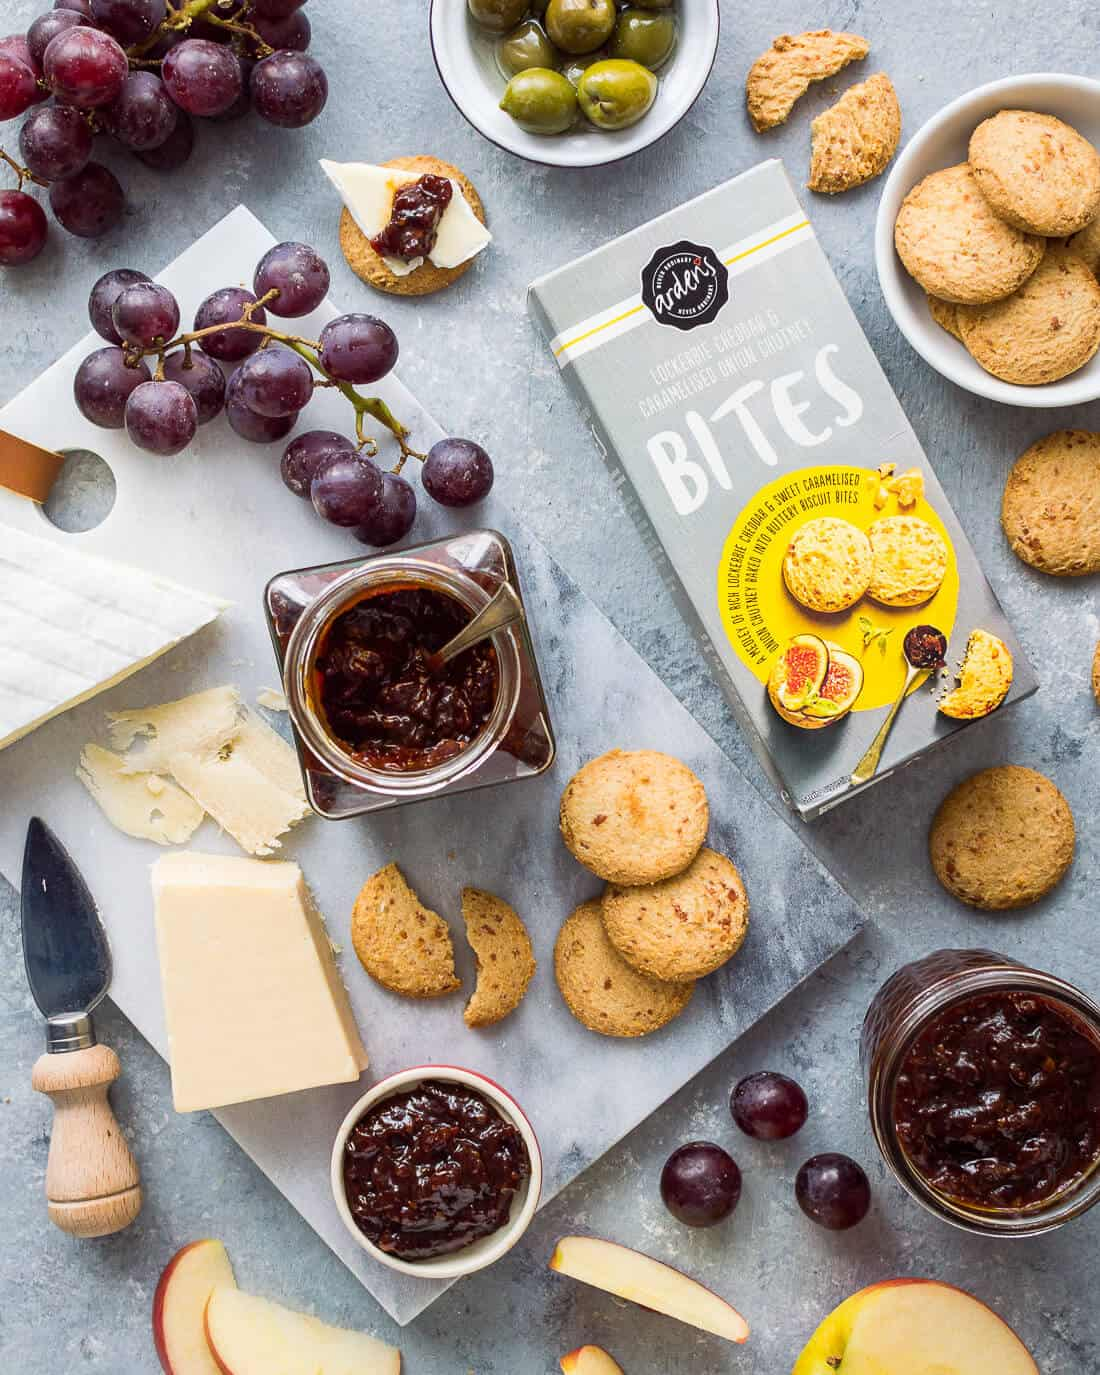 Flatlay of tomato, chilli and caraway jam with cheeses, grapes, apple and Arden's Lockerbie cheddar and caramelised onion chutney bites